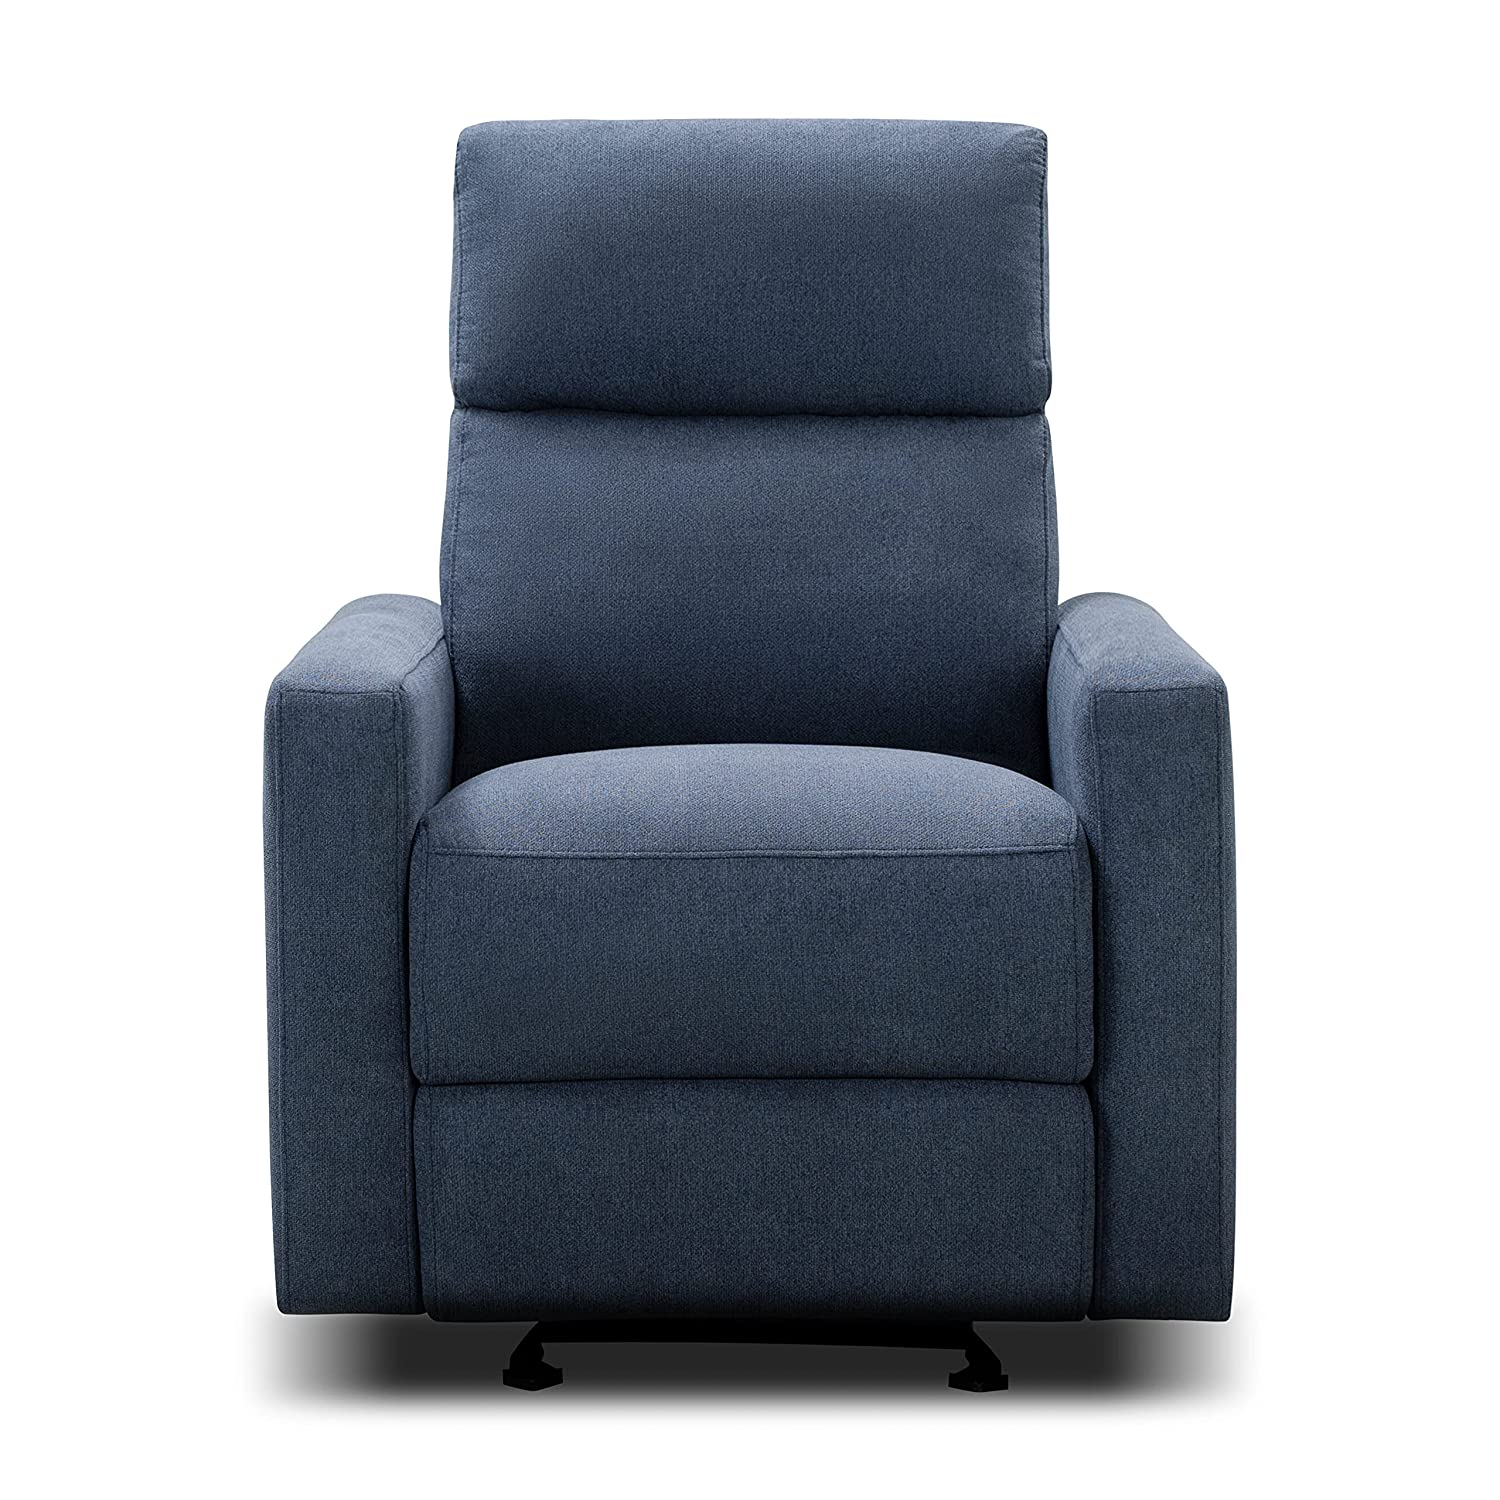 The Glider by Nurture& | Premium Power Recliner Nursery Glider Chair with Adjustable Head Support | Designed with a Thoughtful Combination of Function and Comfort | Built-in USB Charger (Navy)